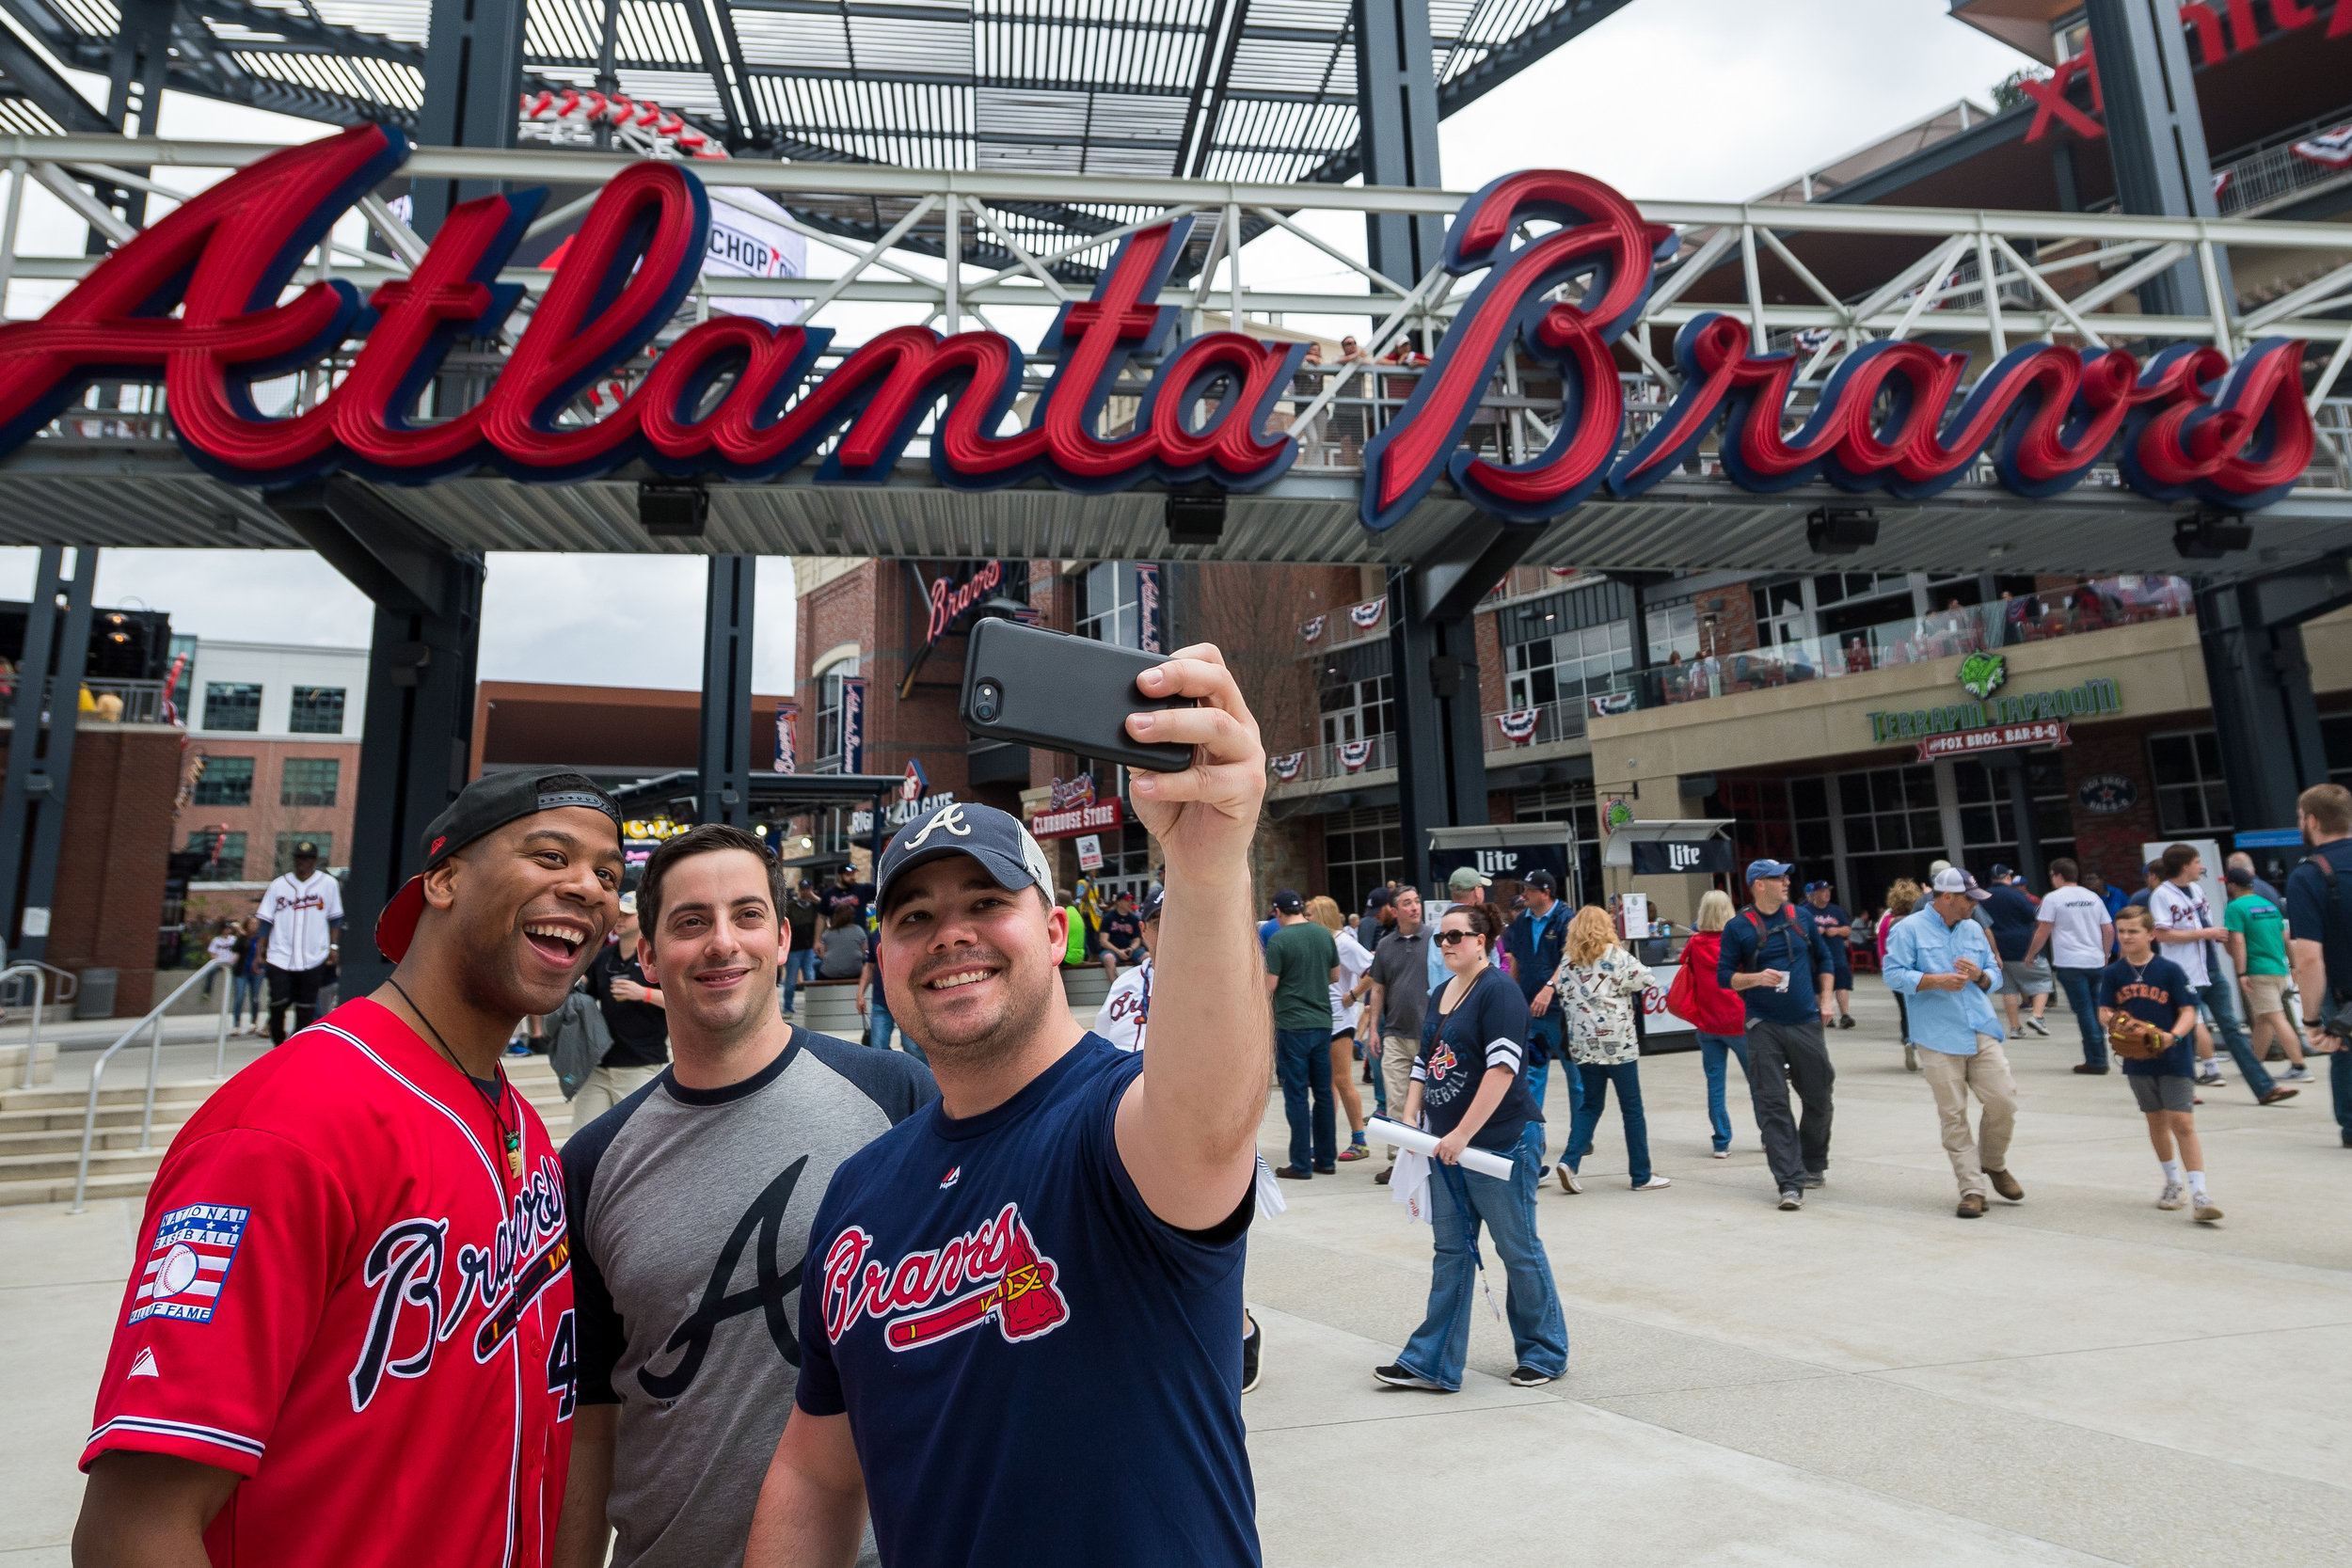 ATLANTA, GA - MARCH 29: Fans gather in Fan Plaza and The Battery before the game against the Philadelphia Phillies on Opening Day at SunTrust Park on March 29, 2018, in Atlanta, Georgia.